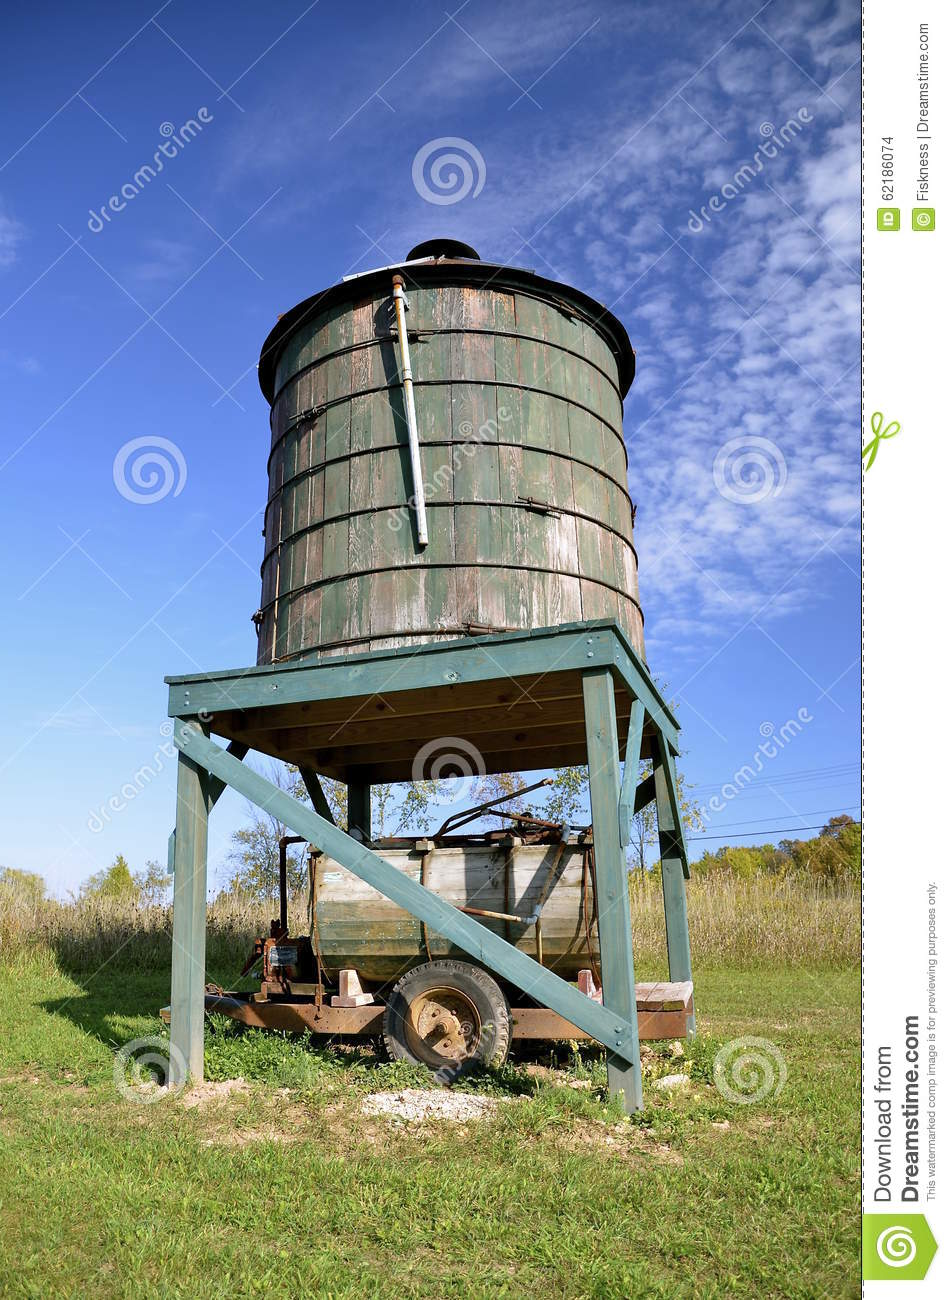 Water Barrel Trailer 100